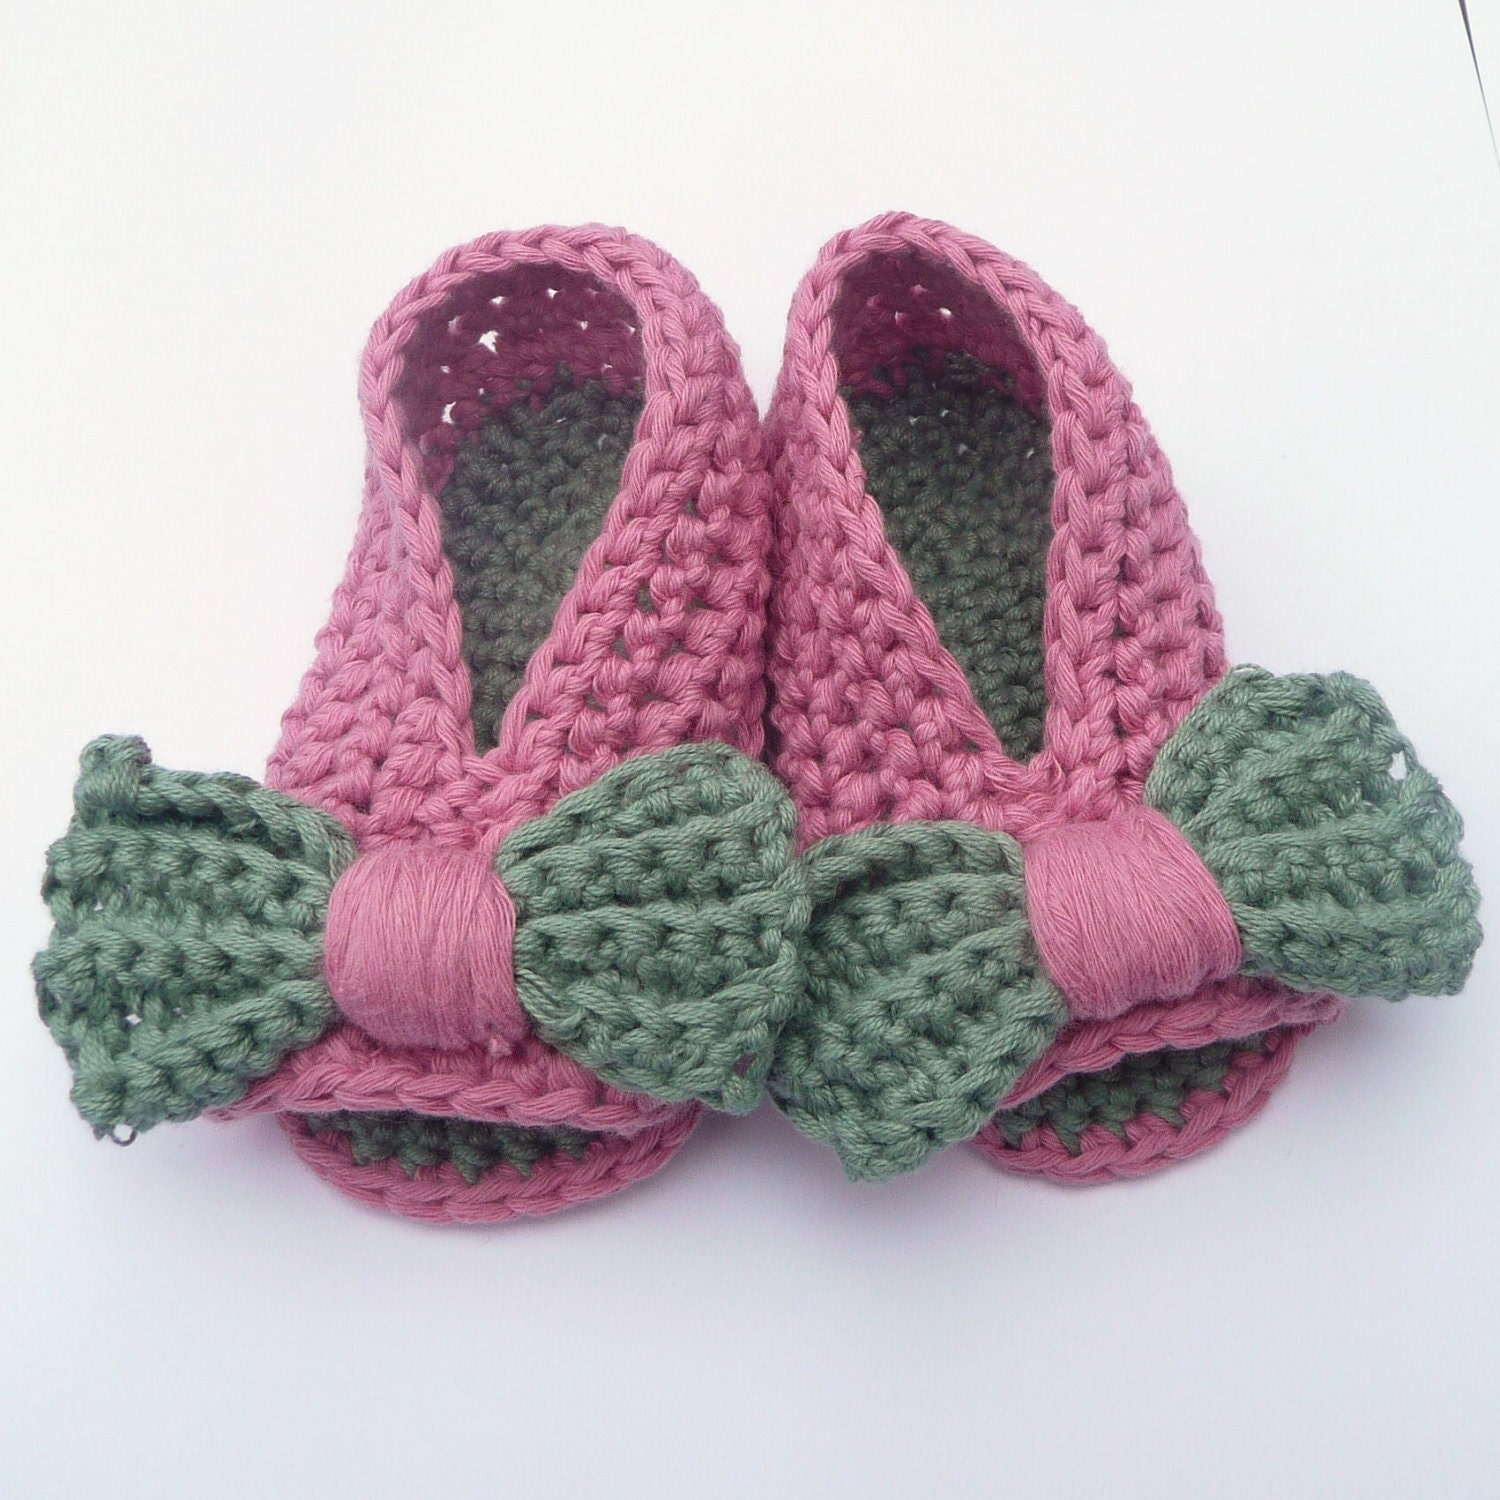 Jun 08,  · To crochet baby booties, start with a chain of 11 stitches, then single crochet the first round. Begin the second row by chaining 2 and performing the rest of the pattern of half double stitches and single double stitches until you have 32 stitches%(30).